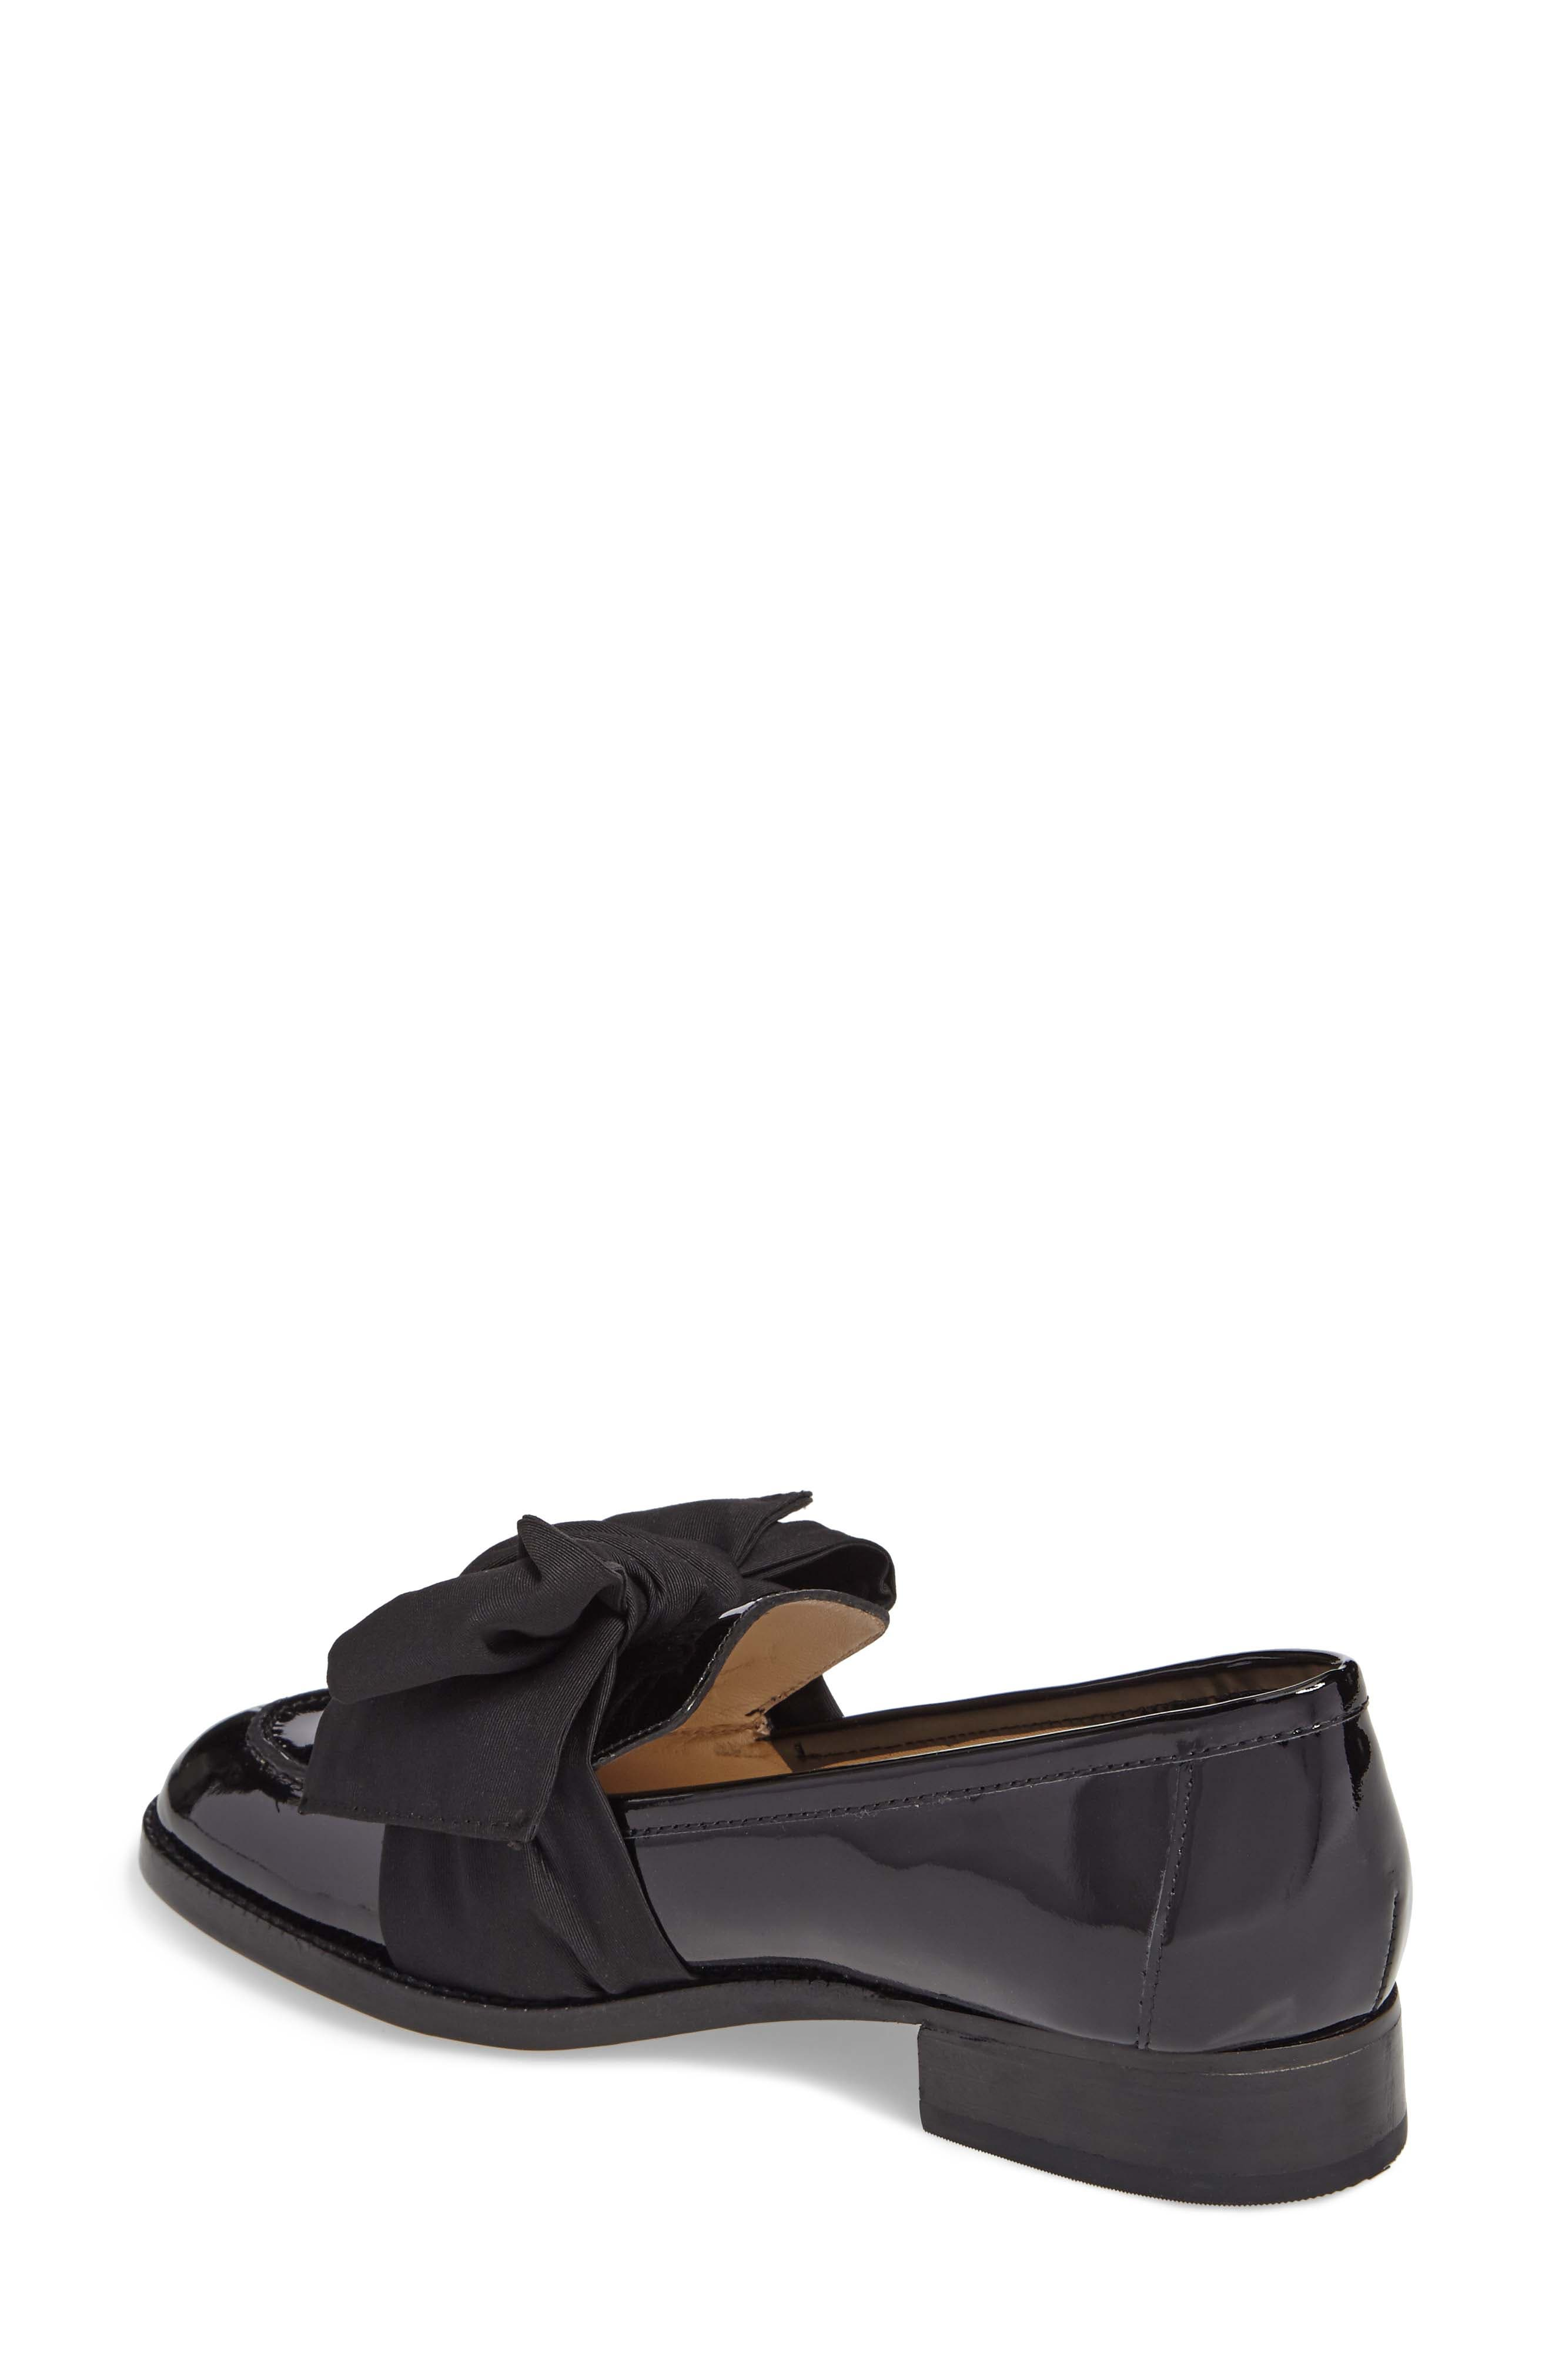 BOTKIER,                             Violet Bow Loafer,                             Alternate thumbnail 2, color,                             BLACK PATENT LEATHER